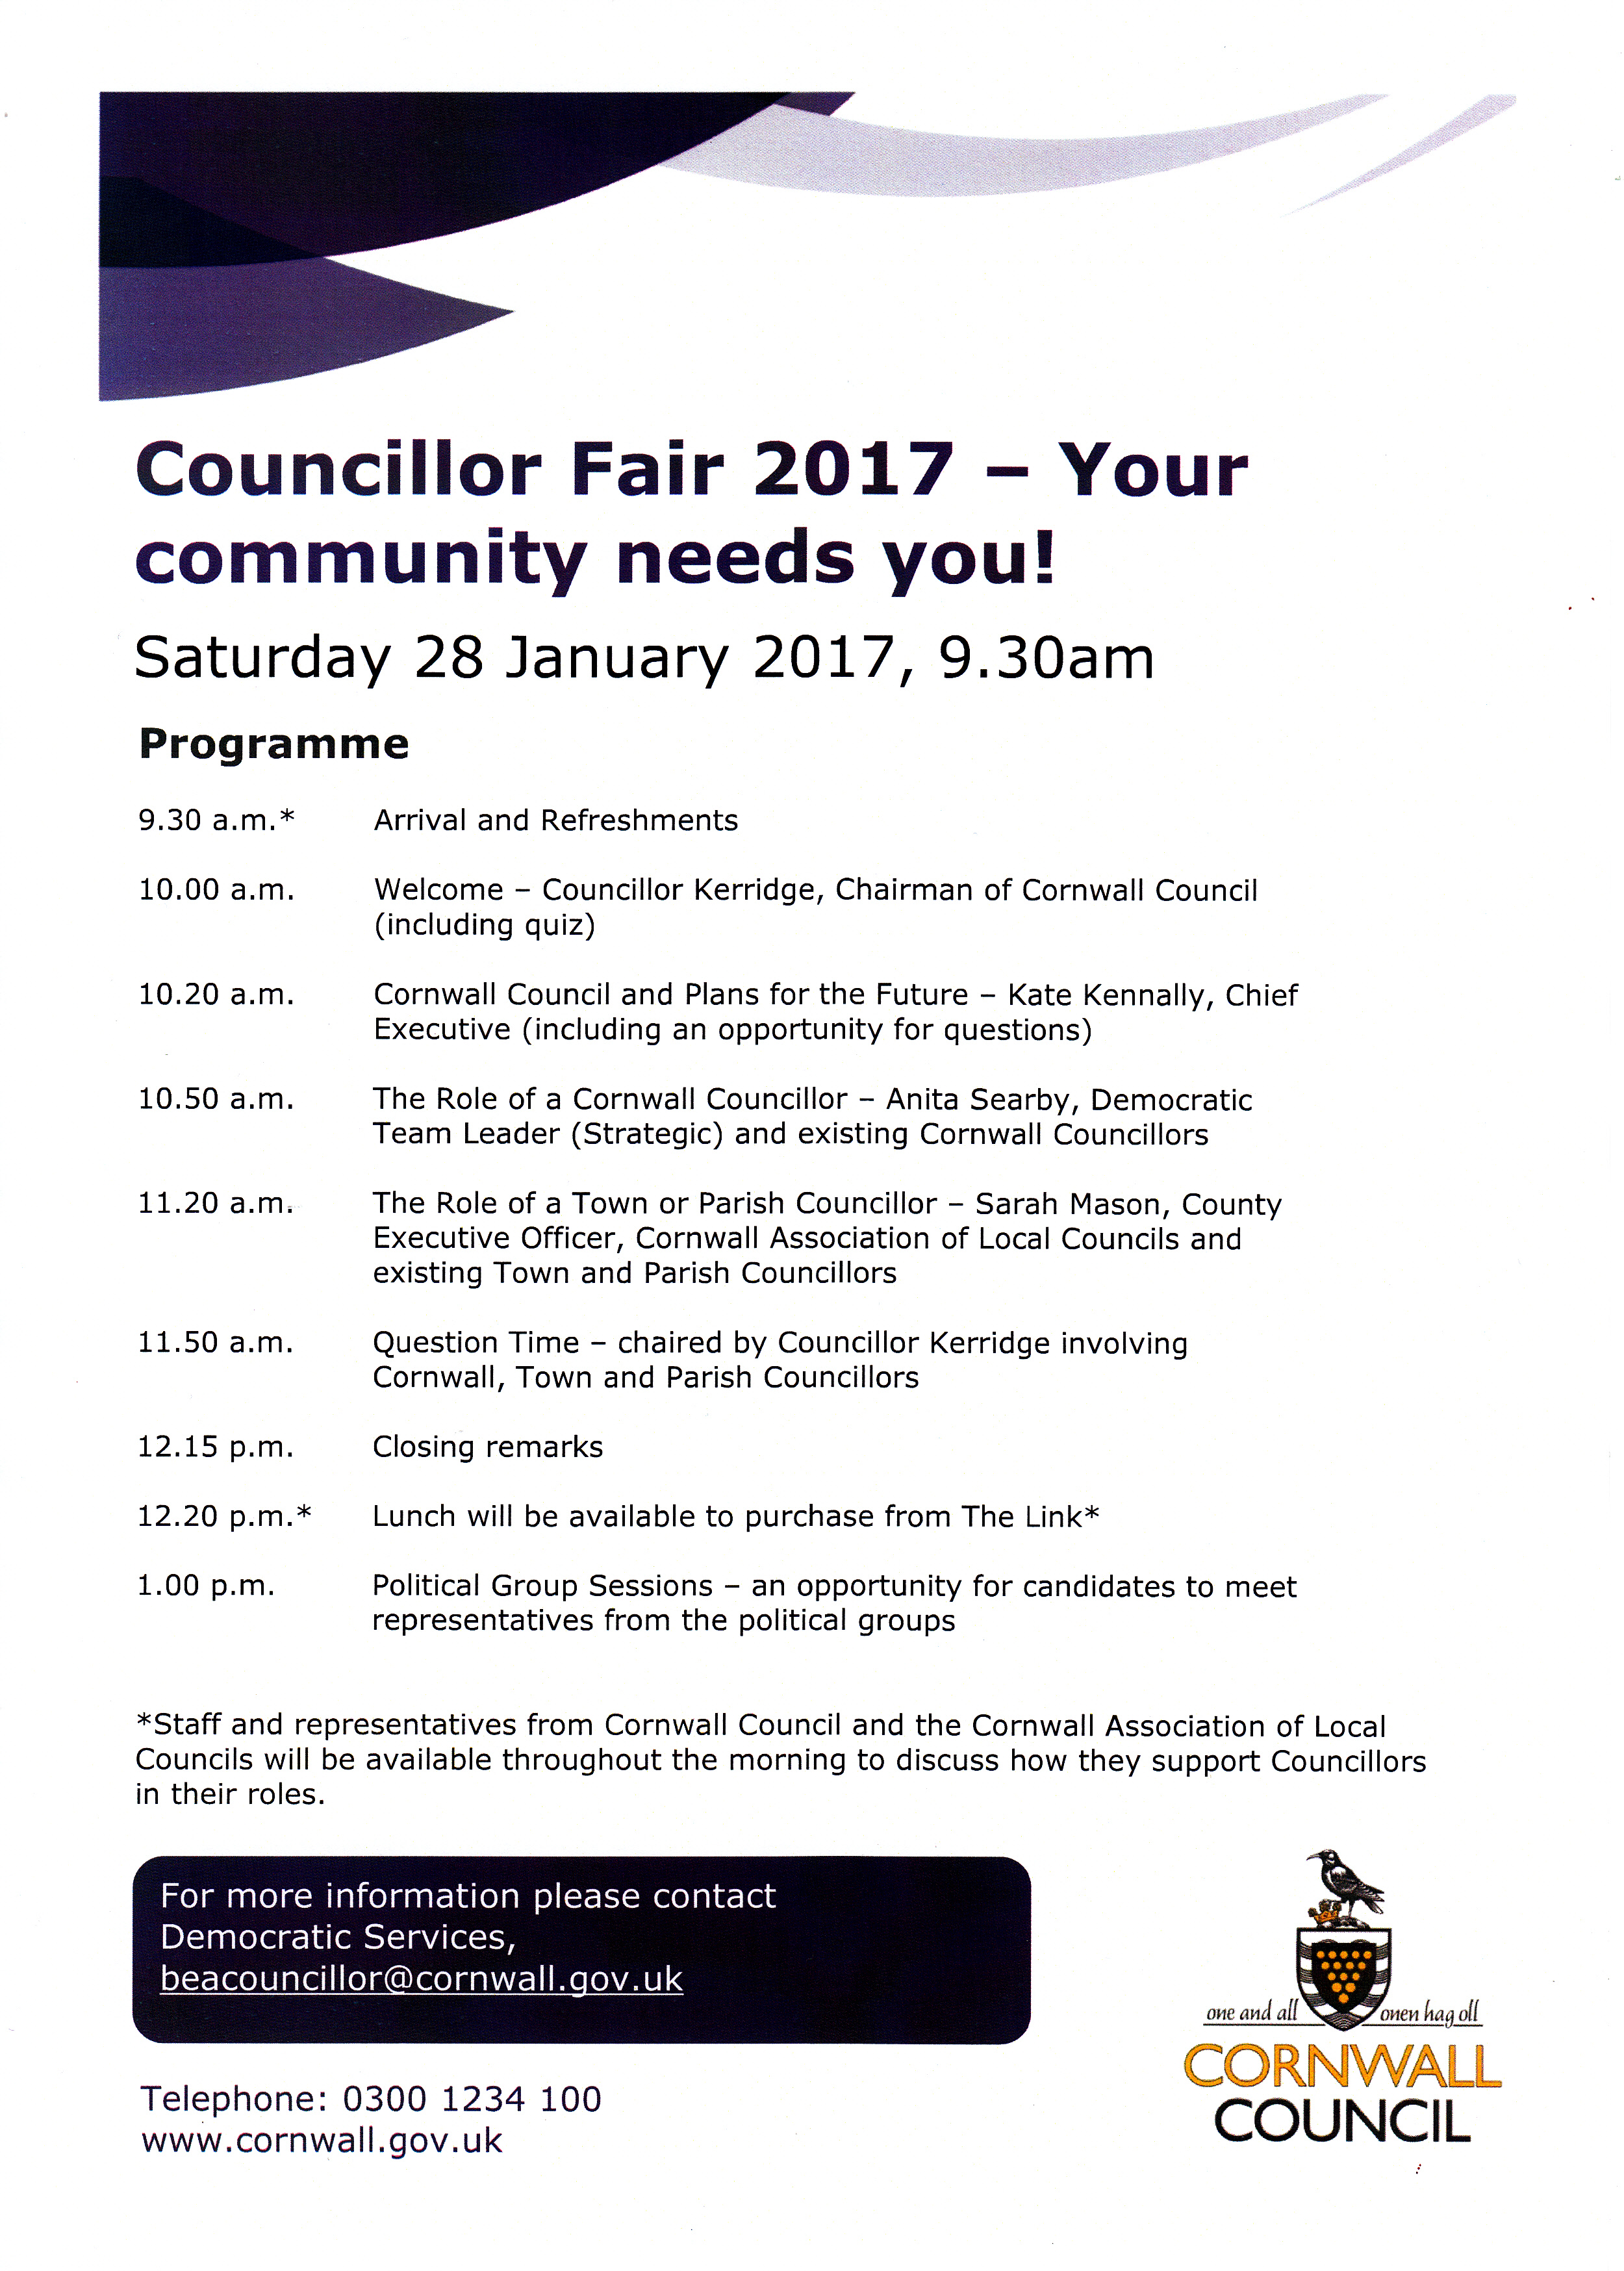 Councillor Fair 2017 poster